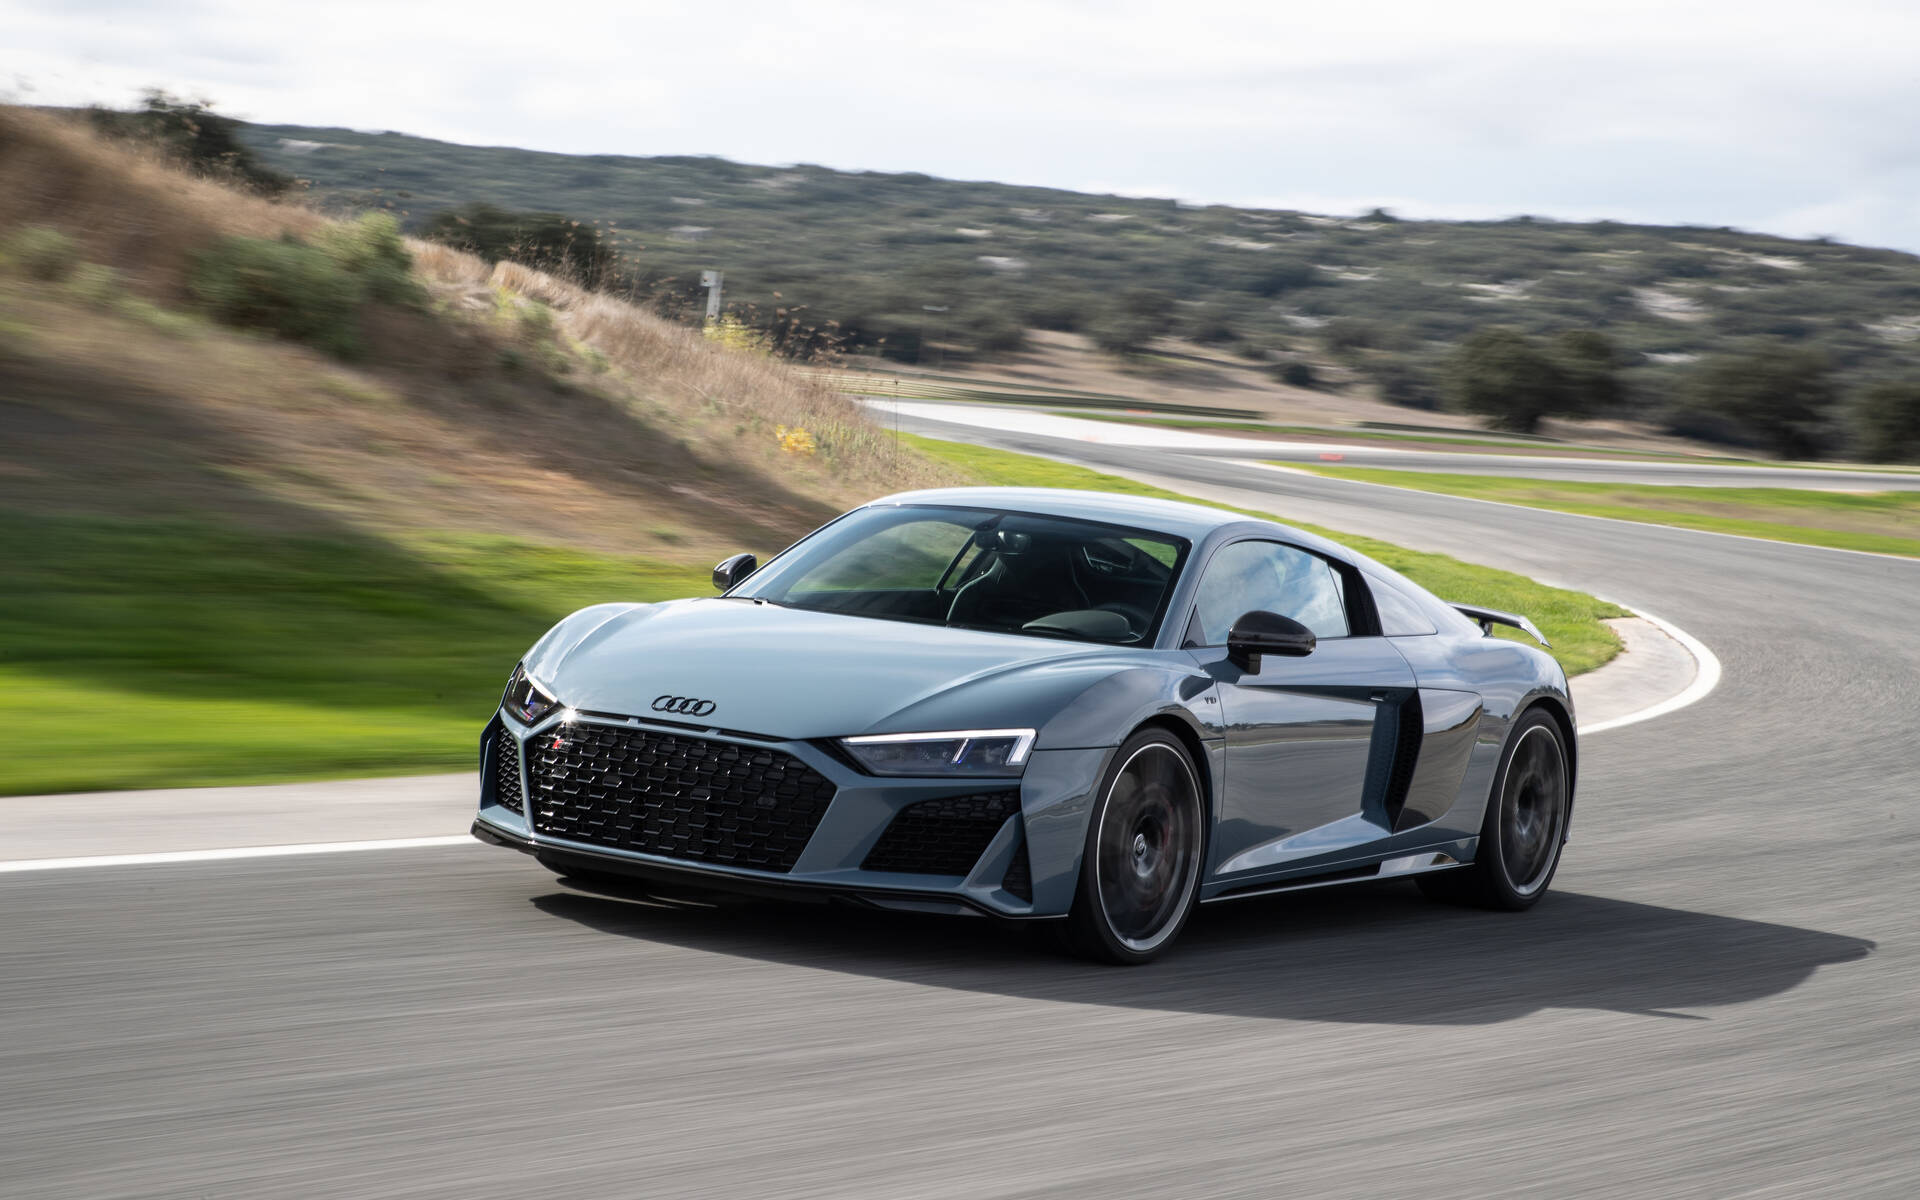 2021 Audi R8 News Reviews Picture Galleries And Videos The Car Guide